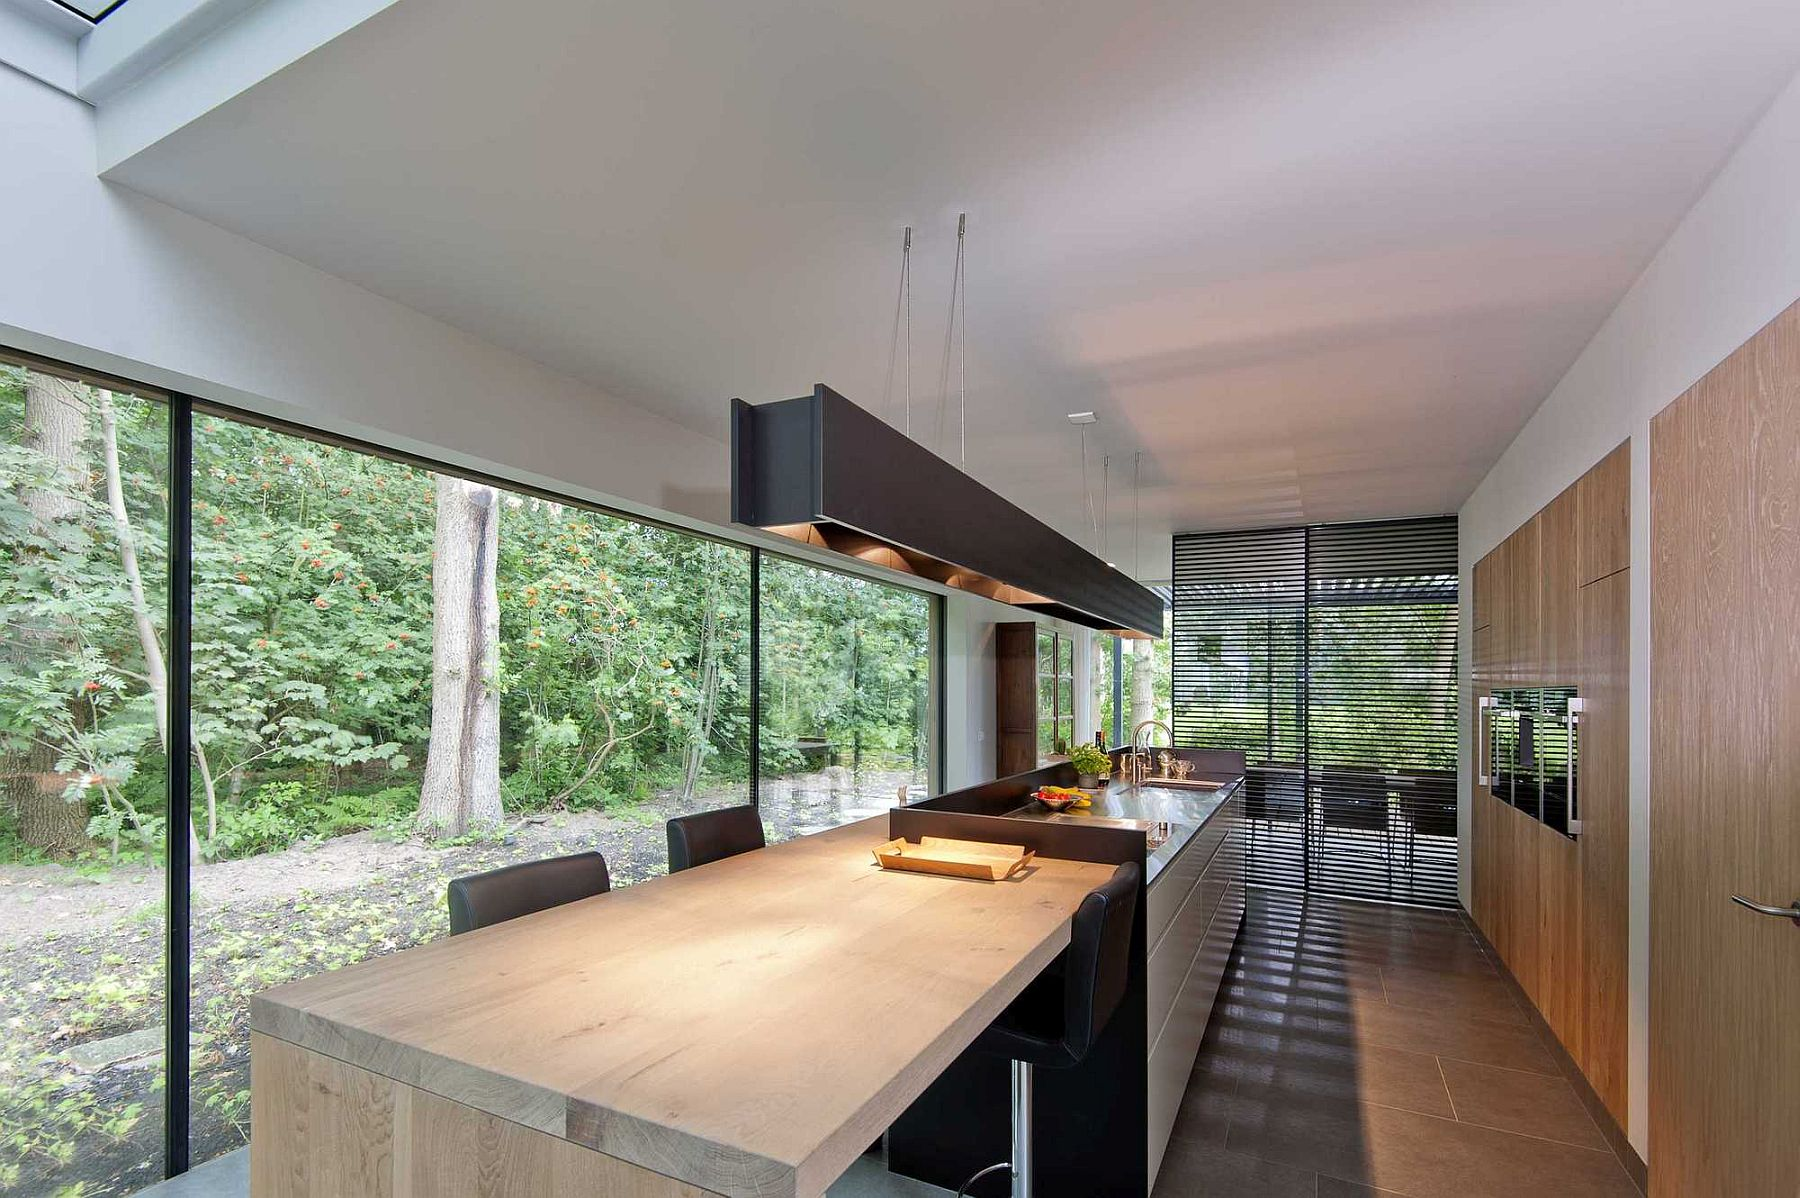 Long kitchen island in black with a cool wooden breakfast nook and dining zone next to it